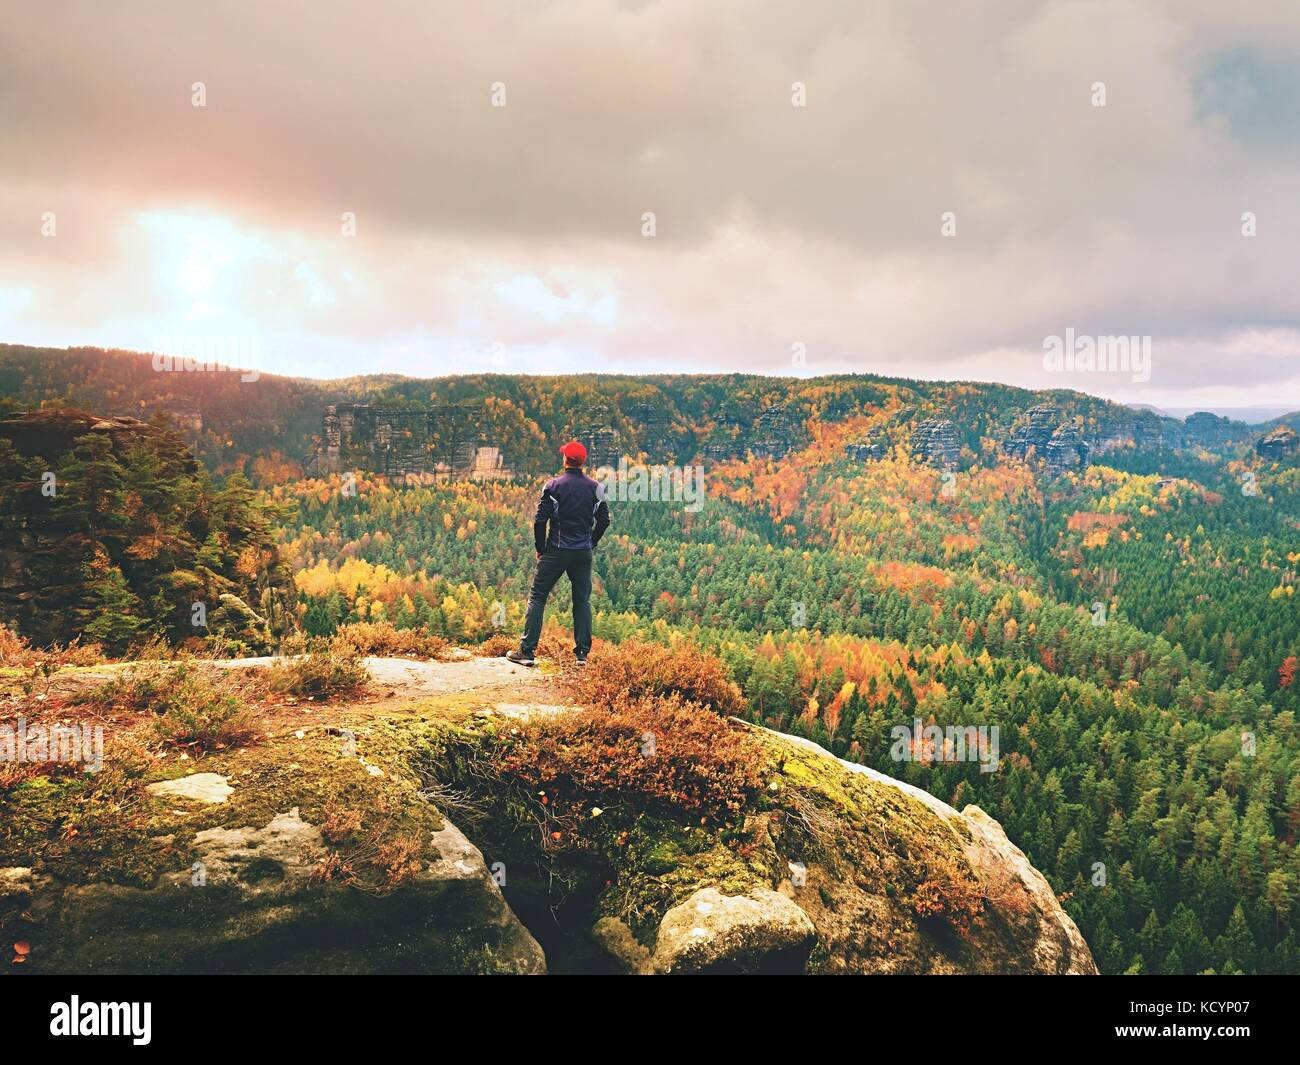 Alone tourist with outdoor sportswear and backpack stand on cliff edge  and watching into colorful autumn valley - Stock Image